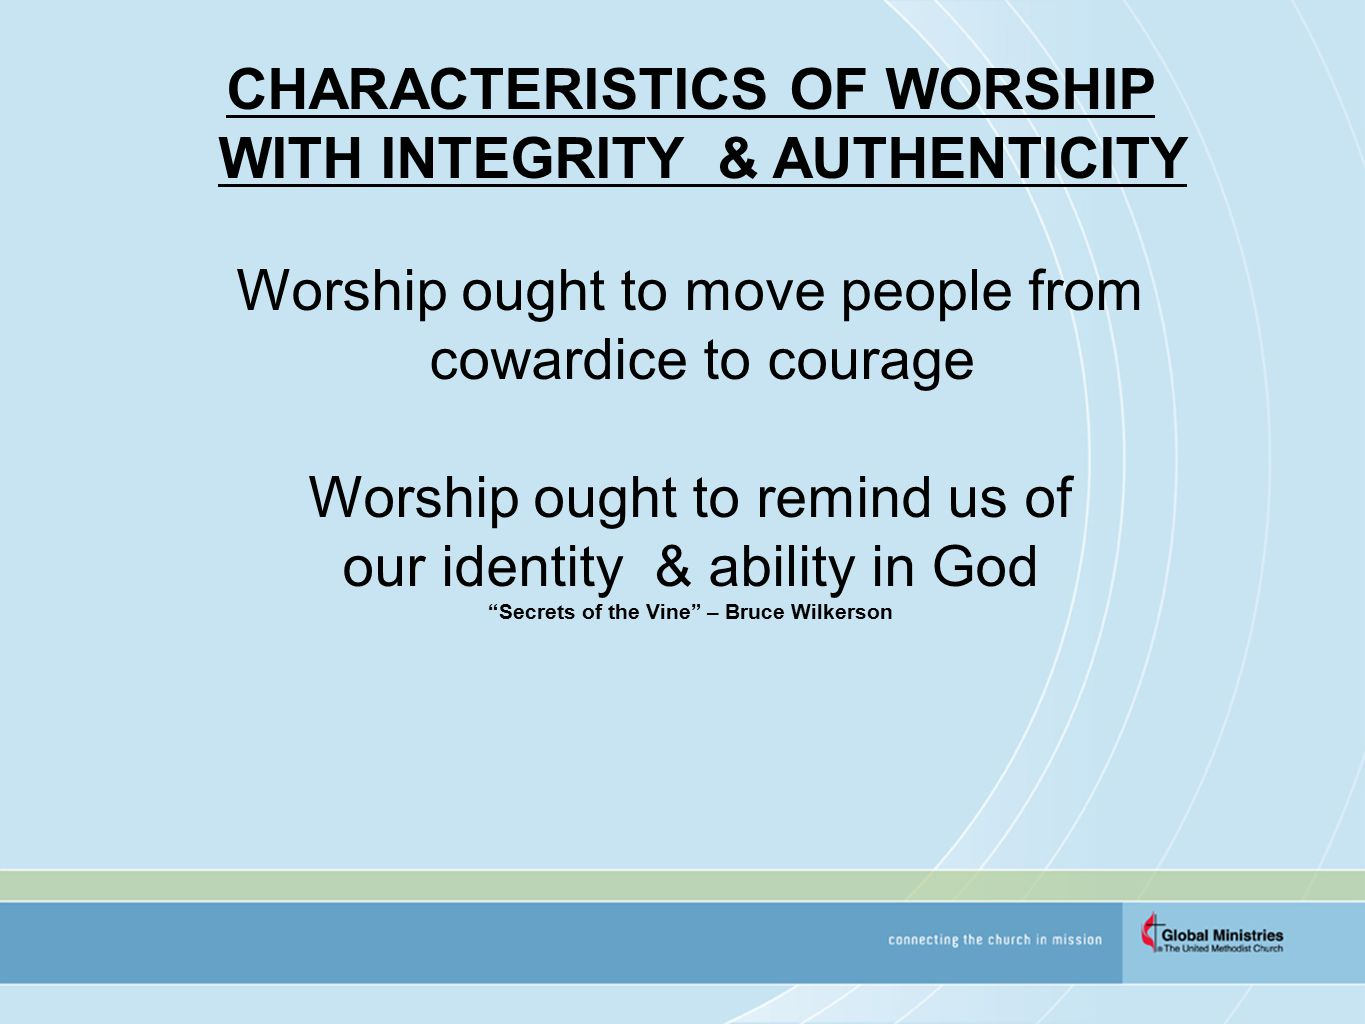 CHARACTERISTICS OF WORSHIP WITH INTEGRITY & AUTHENTICITY Worship ought to move people from cowardice to courage Worship ought to remind us of our identity & ability in God Secrets of the Vine – Bruce Wilkerson